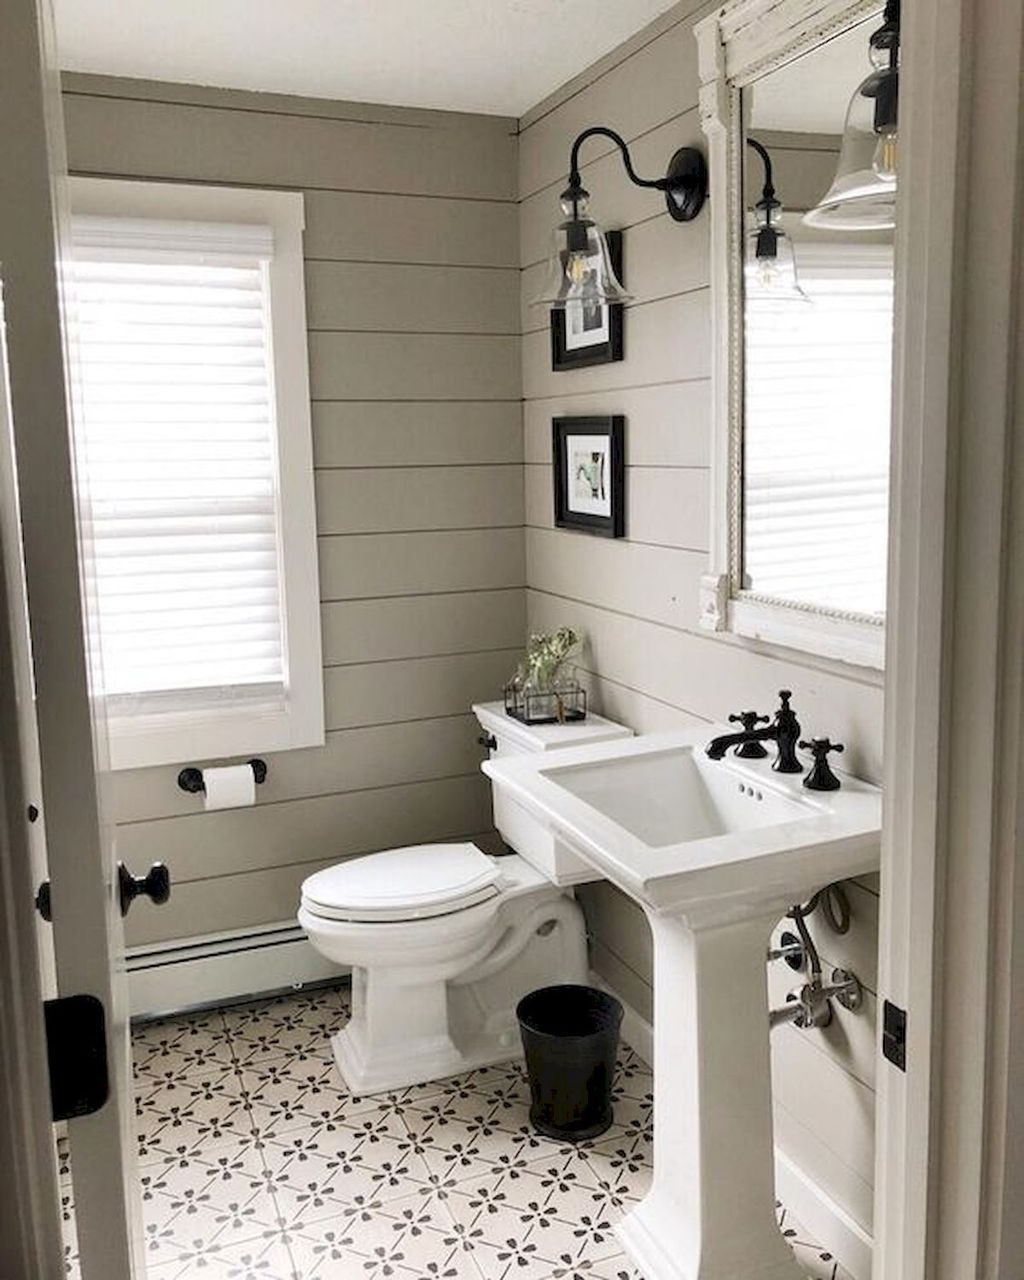 44 Affordable Farmhouse Bathroom Design Ideas With Images